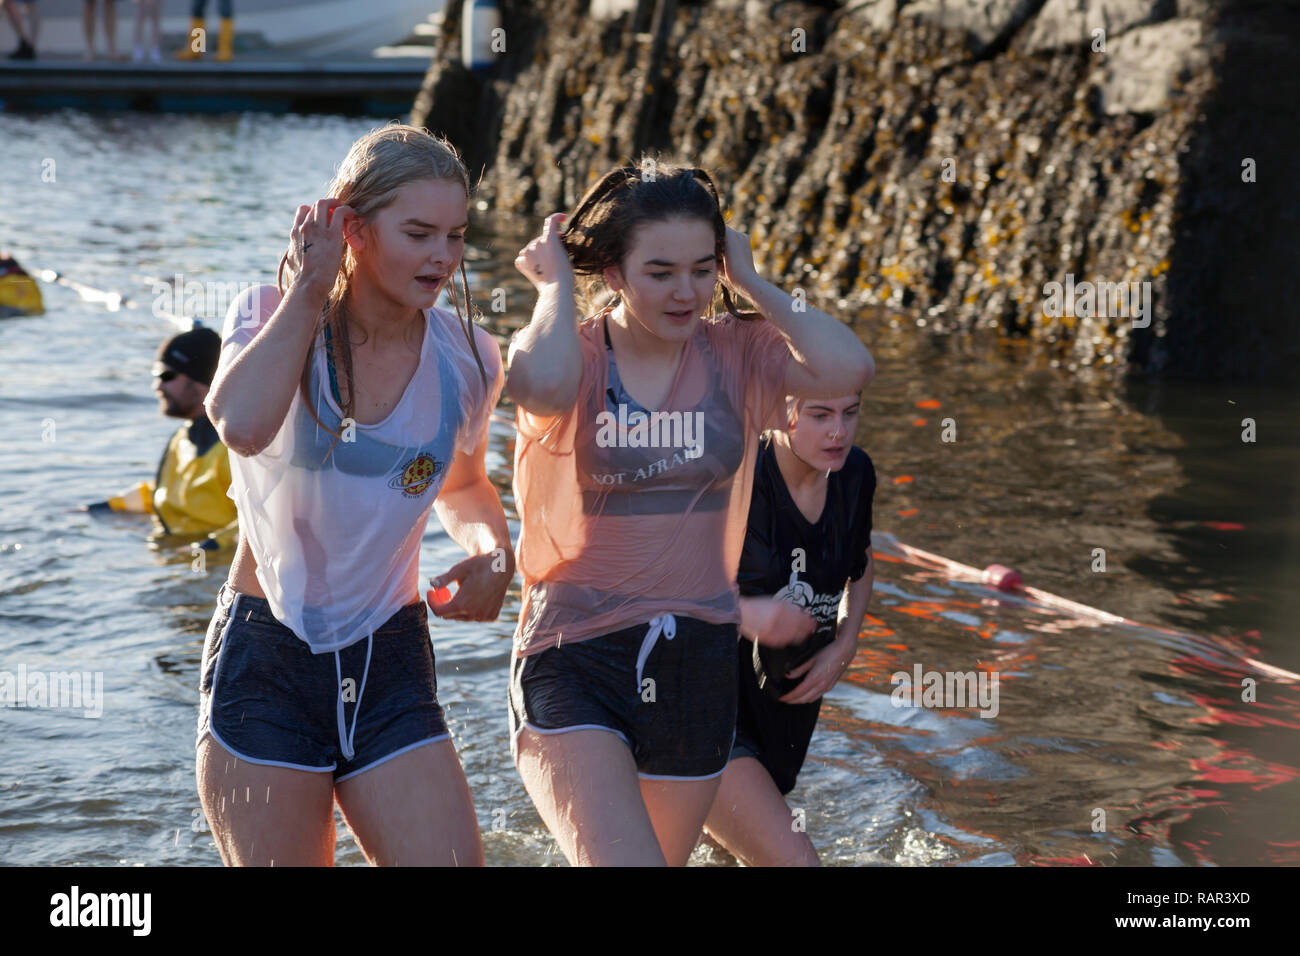 Two girls emerging from the water at the annual New Year's Day swim at Rhu Marina, Scotland - Stock Image